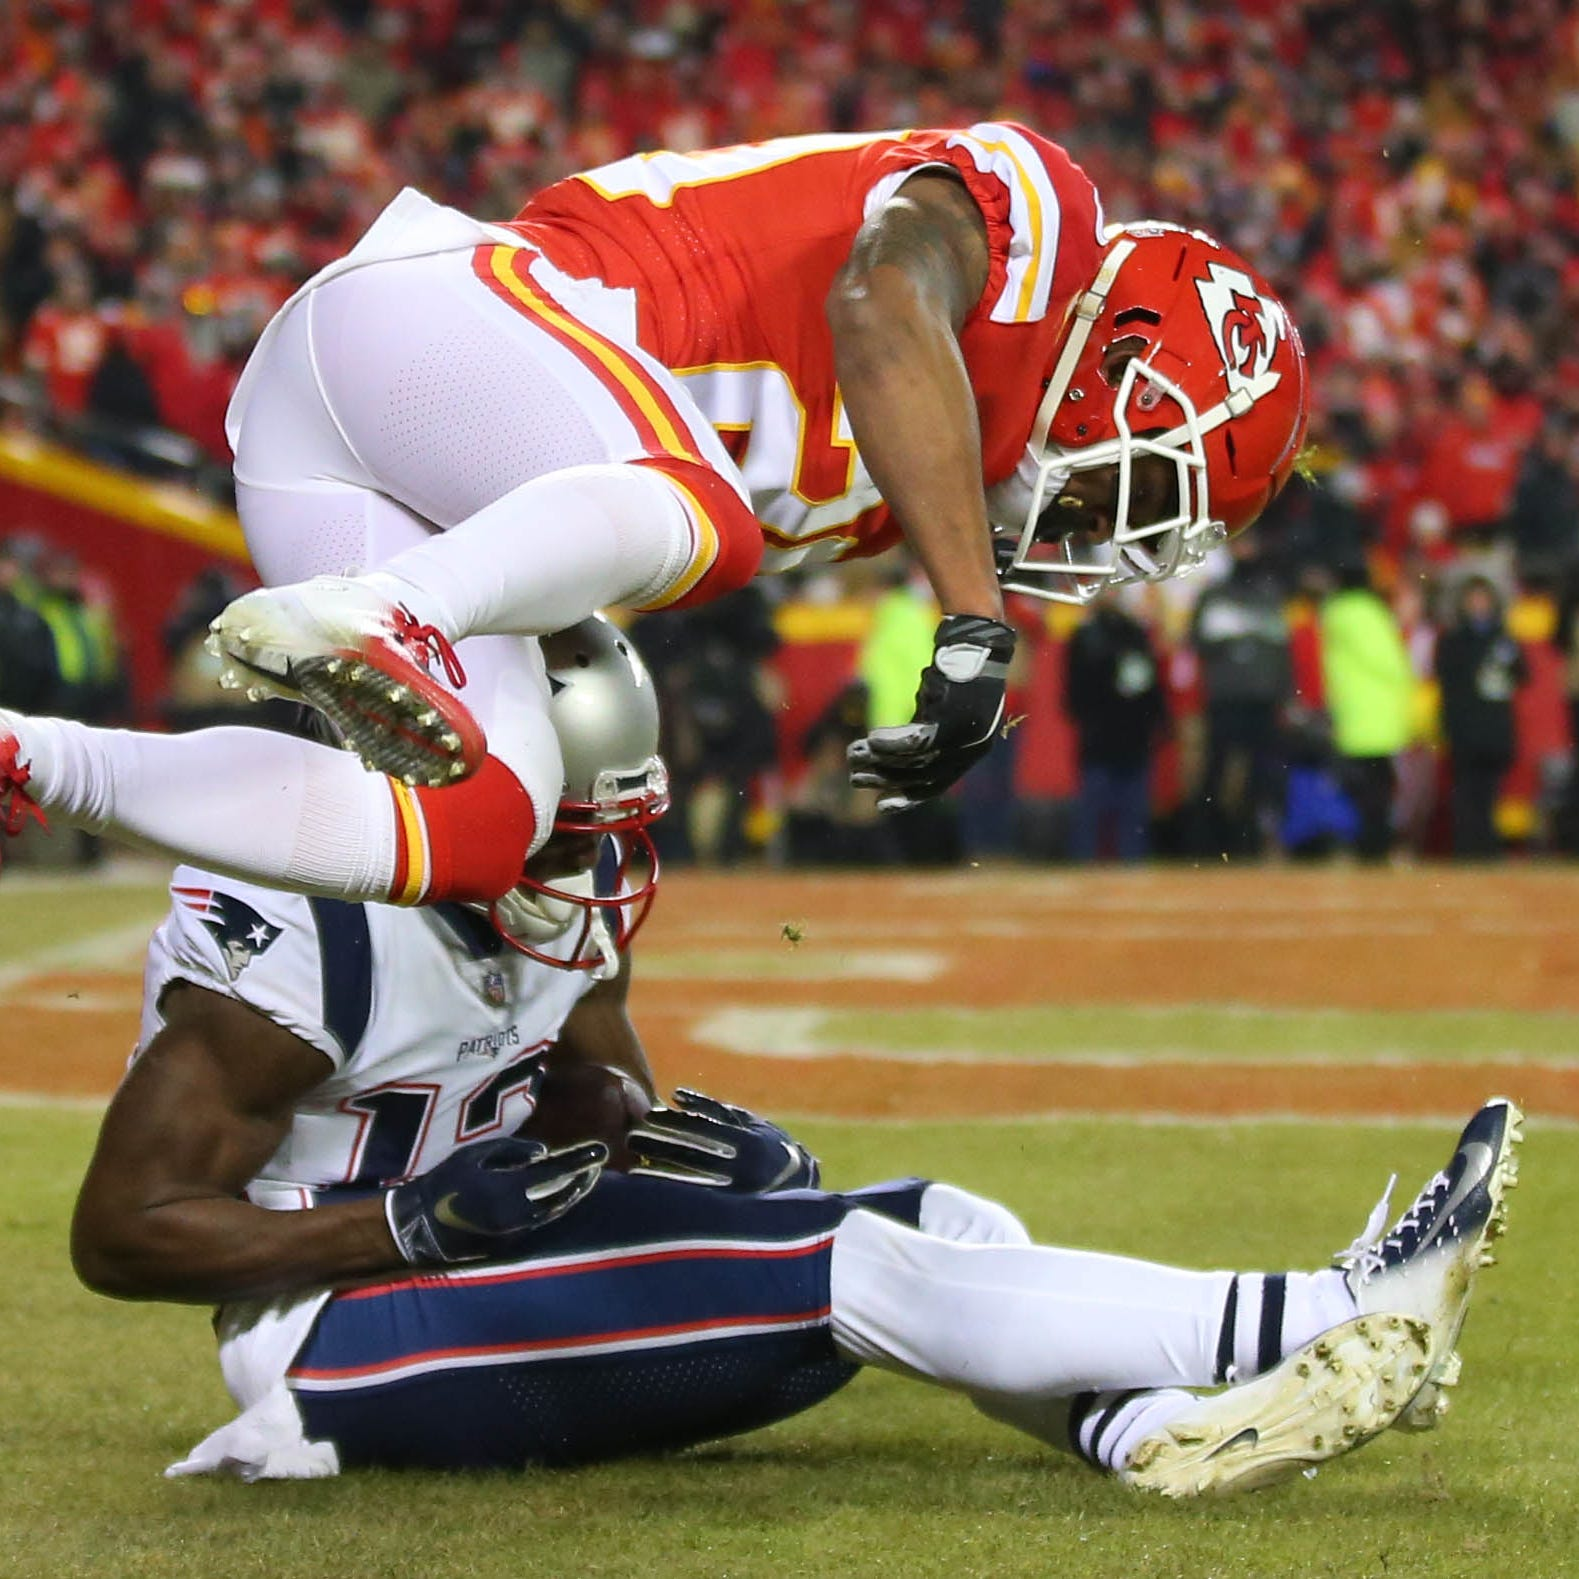 NFL Playoffs: New England Patriots beat Kansas City Chiefs in AFC title game